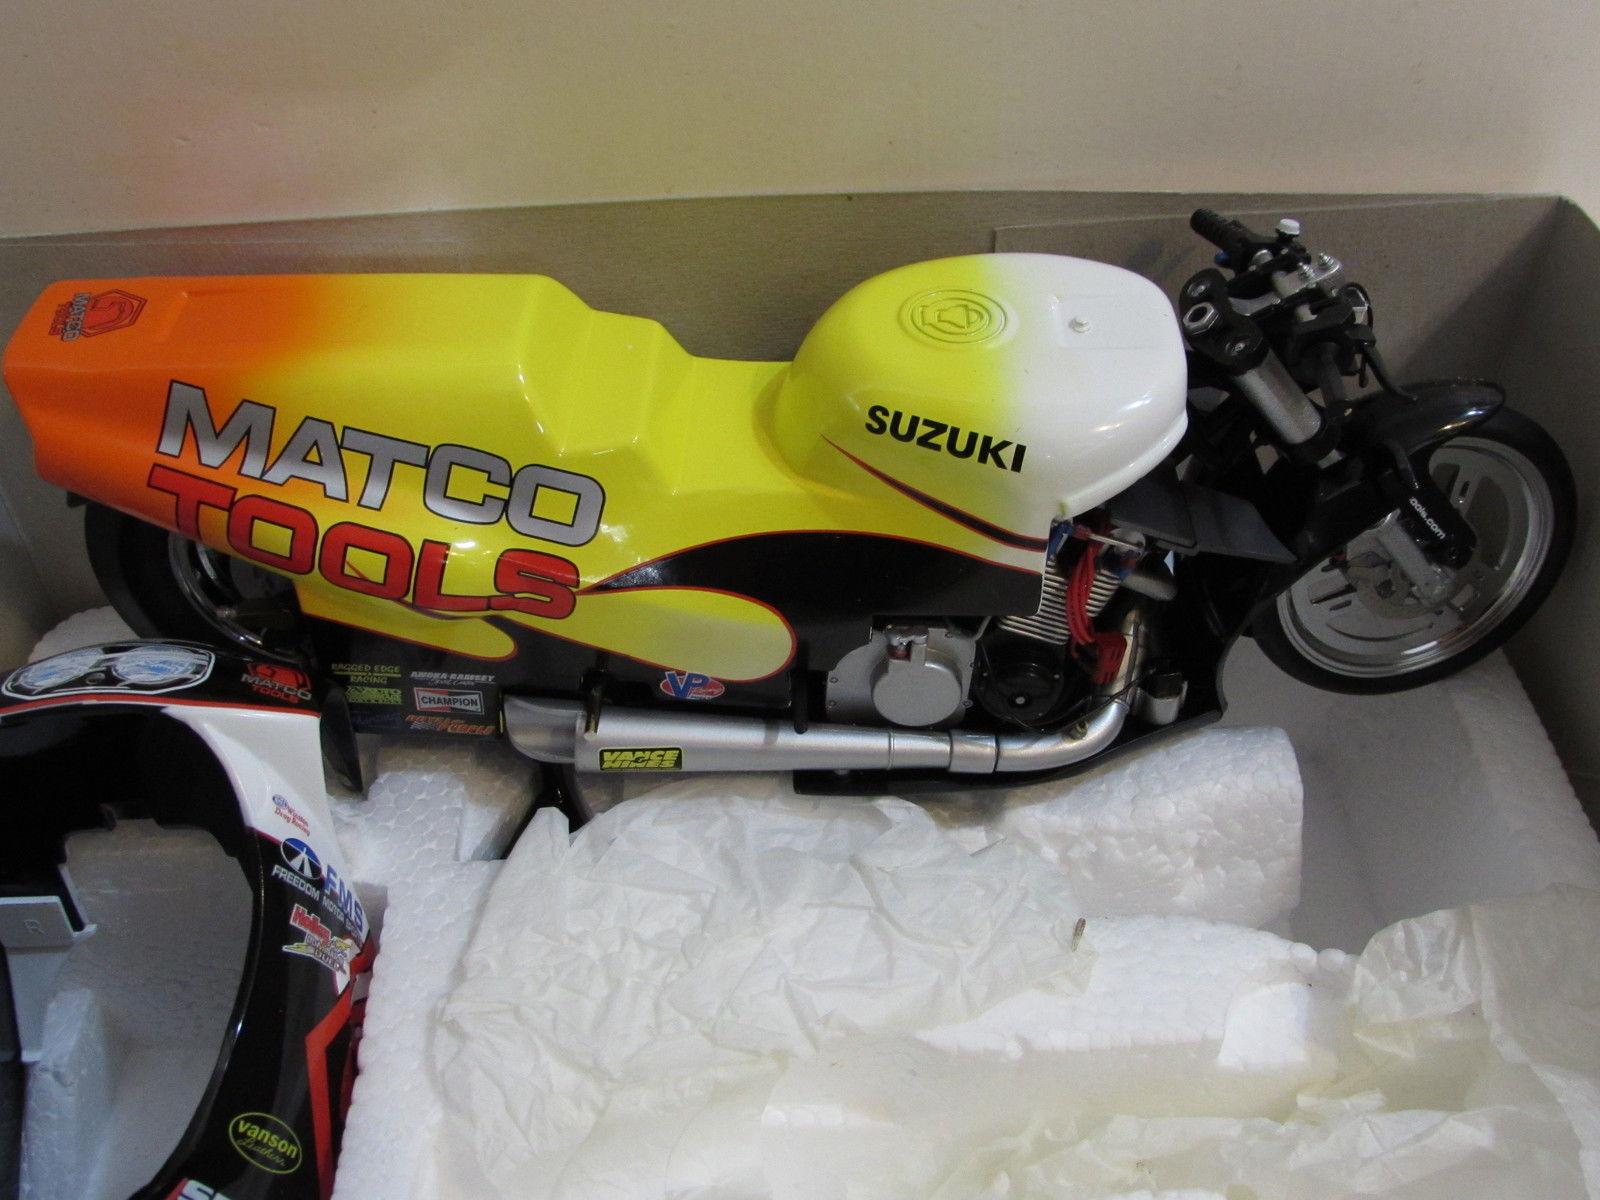 MATCO TOOLS 2000 PRO STOCK MOTORCYCLE SCALE 1:9